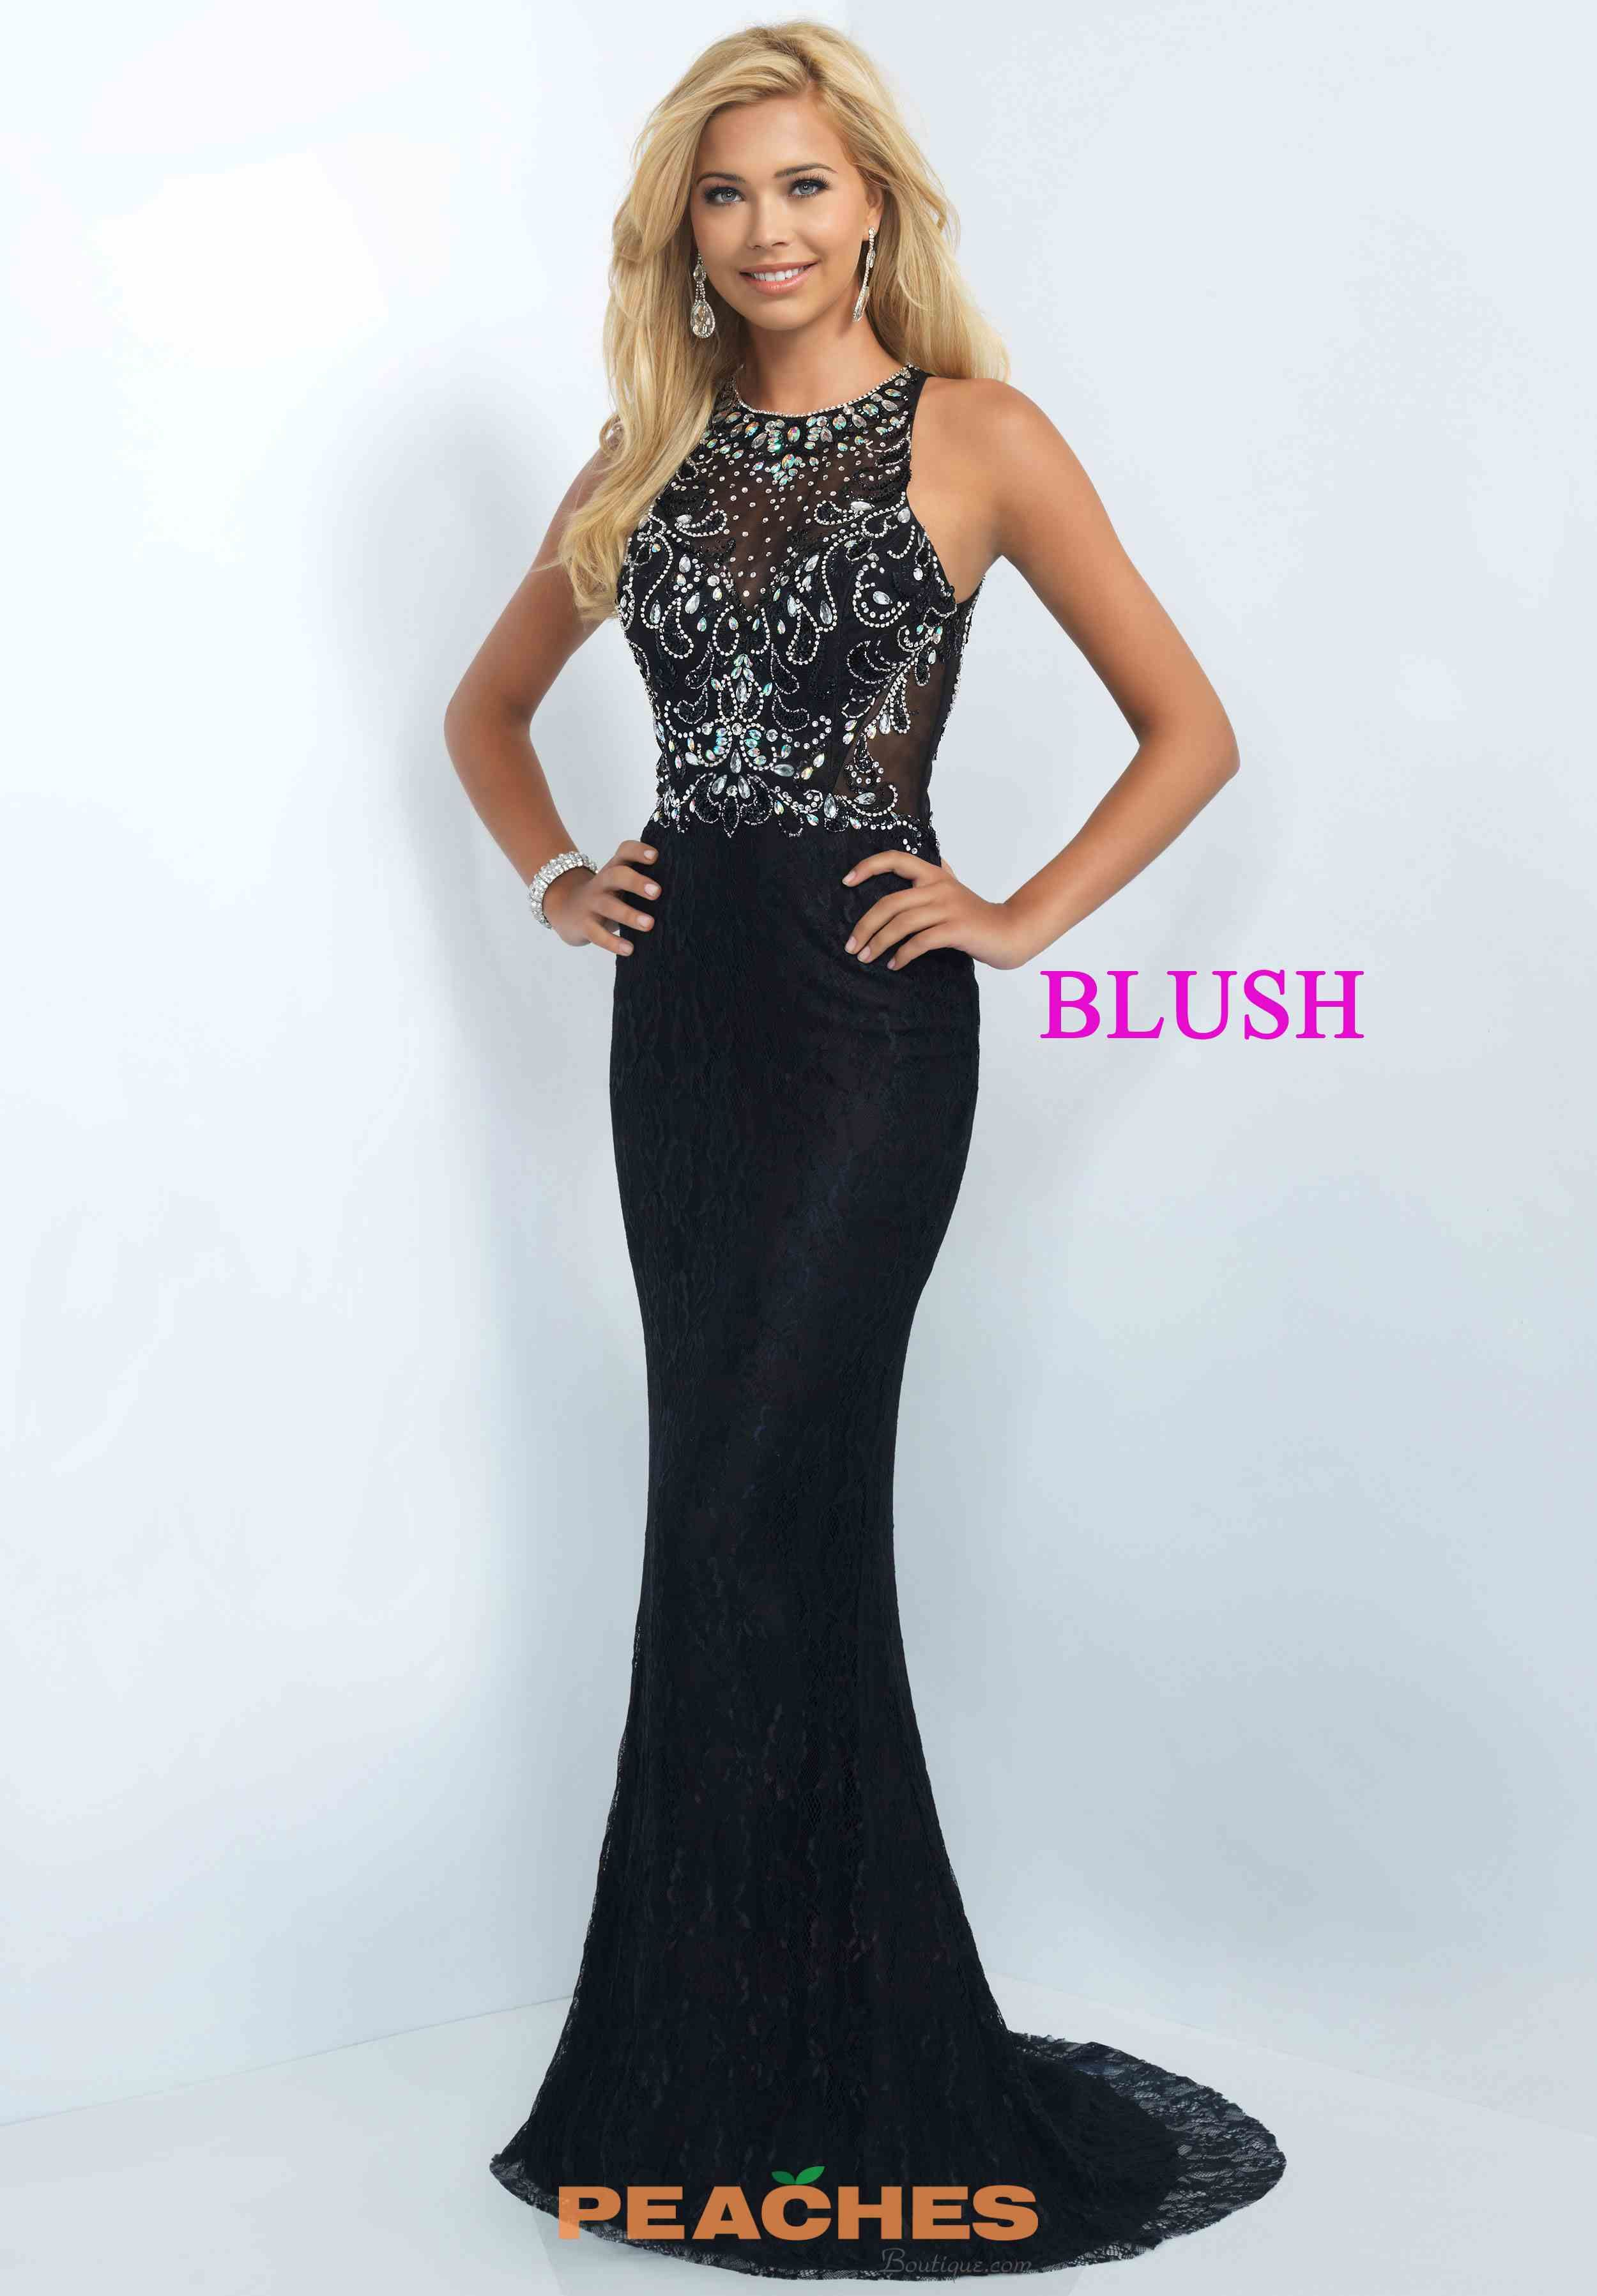 Blush Fit and Flare Beaded Evening Gown 11111   prom   Pinterest ...